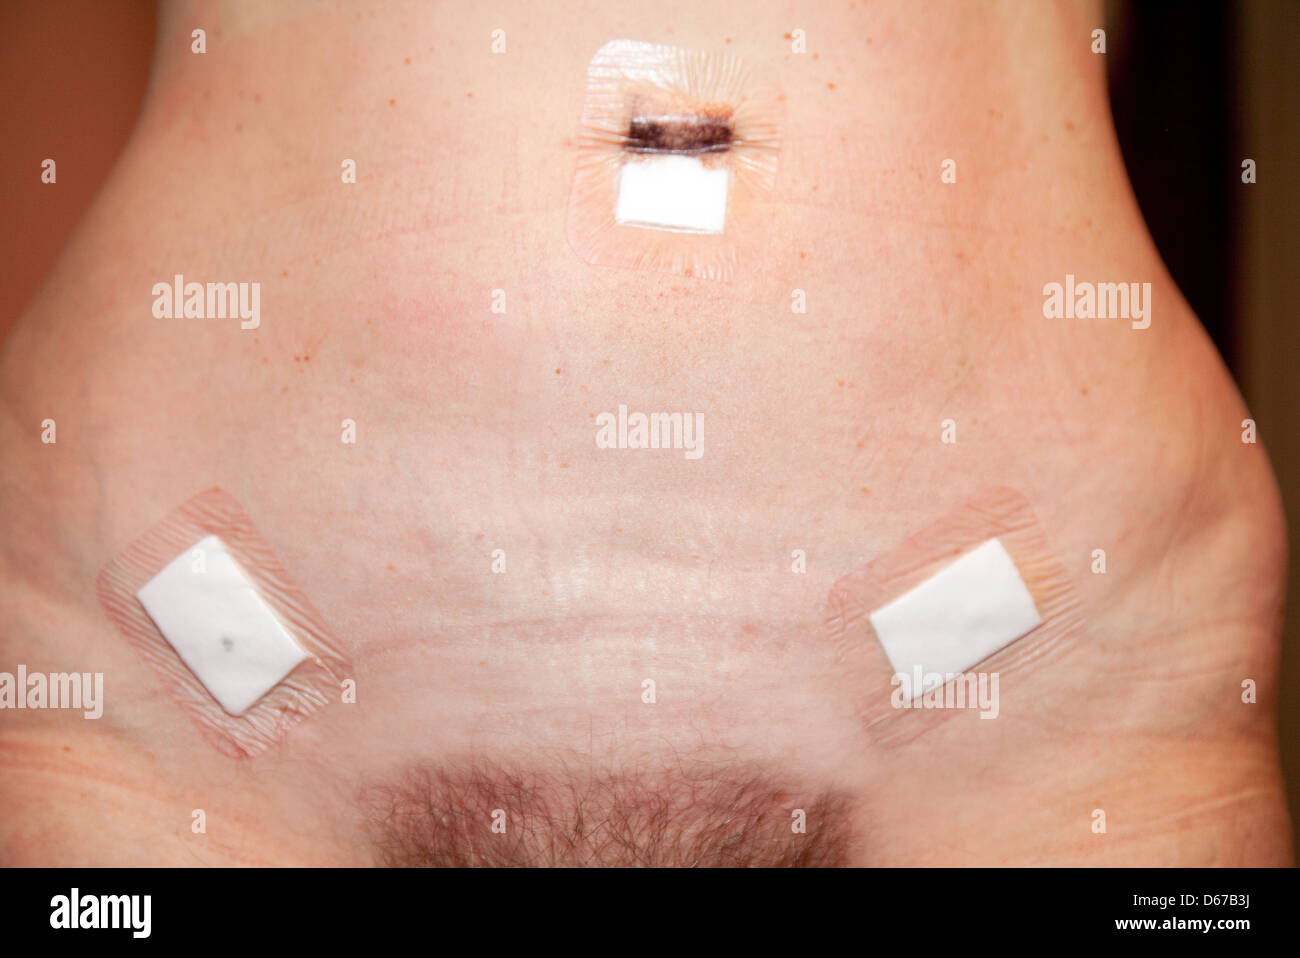 Stomach of a woman showing the operation scars from a laparoscopy ( keyhole surgery ) 1 day old, UK Stock Photo